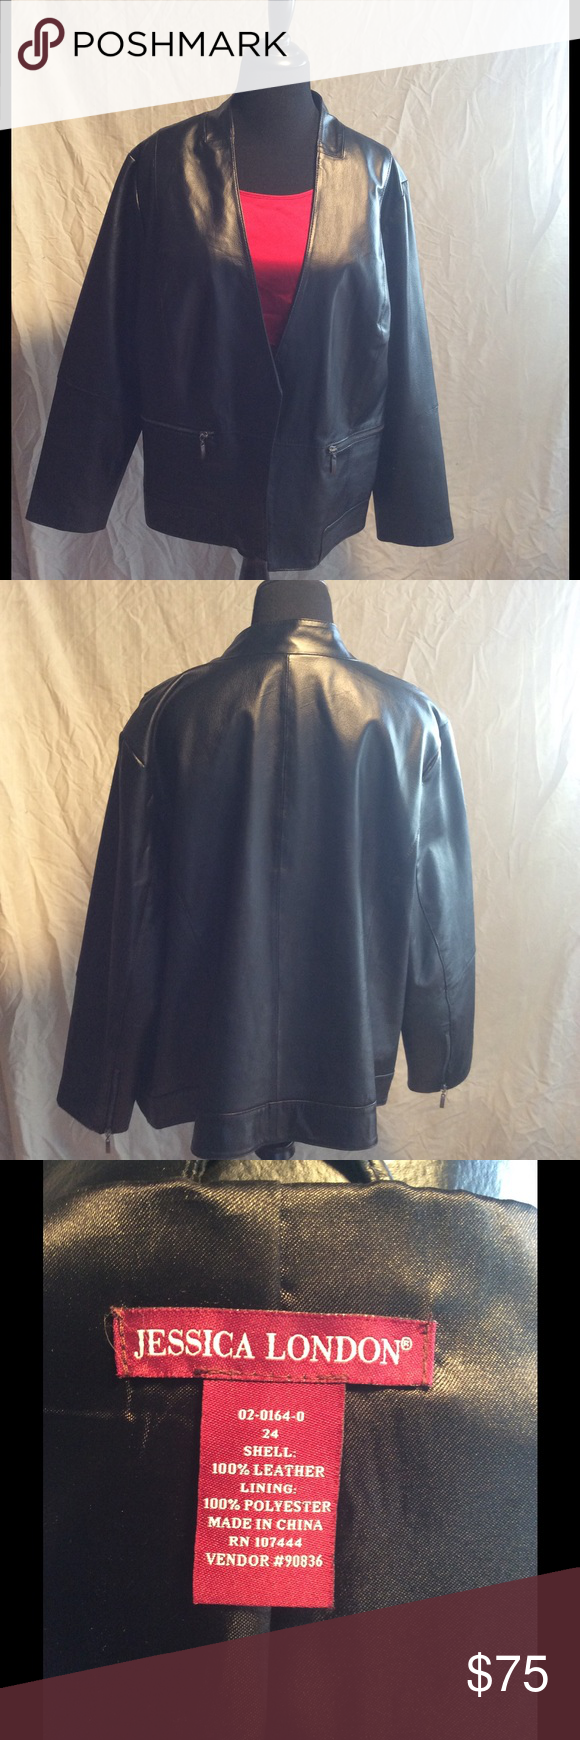 Black genuine leather jacket Jessica London size 24 black leather jacket. Open front. Nice details. Fully lined. Worn once. Looks great with a dressy outfit as well as jeans. Jessica London Jackets & Coats